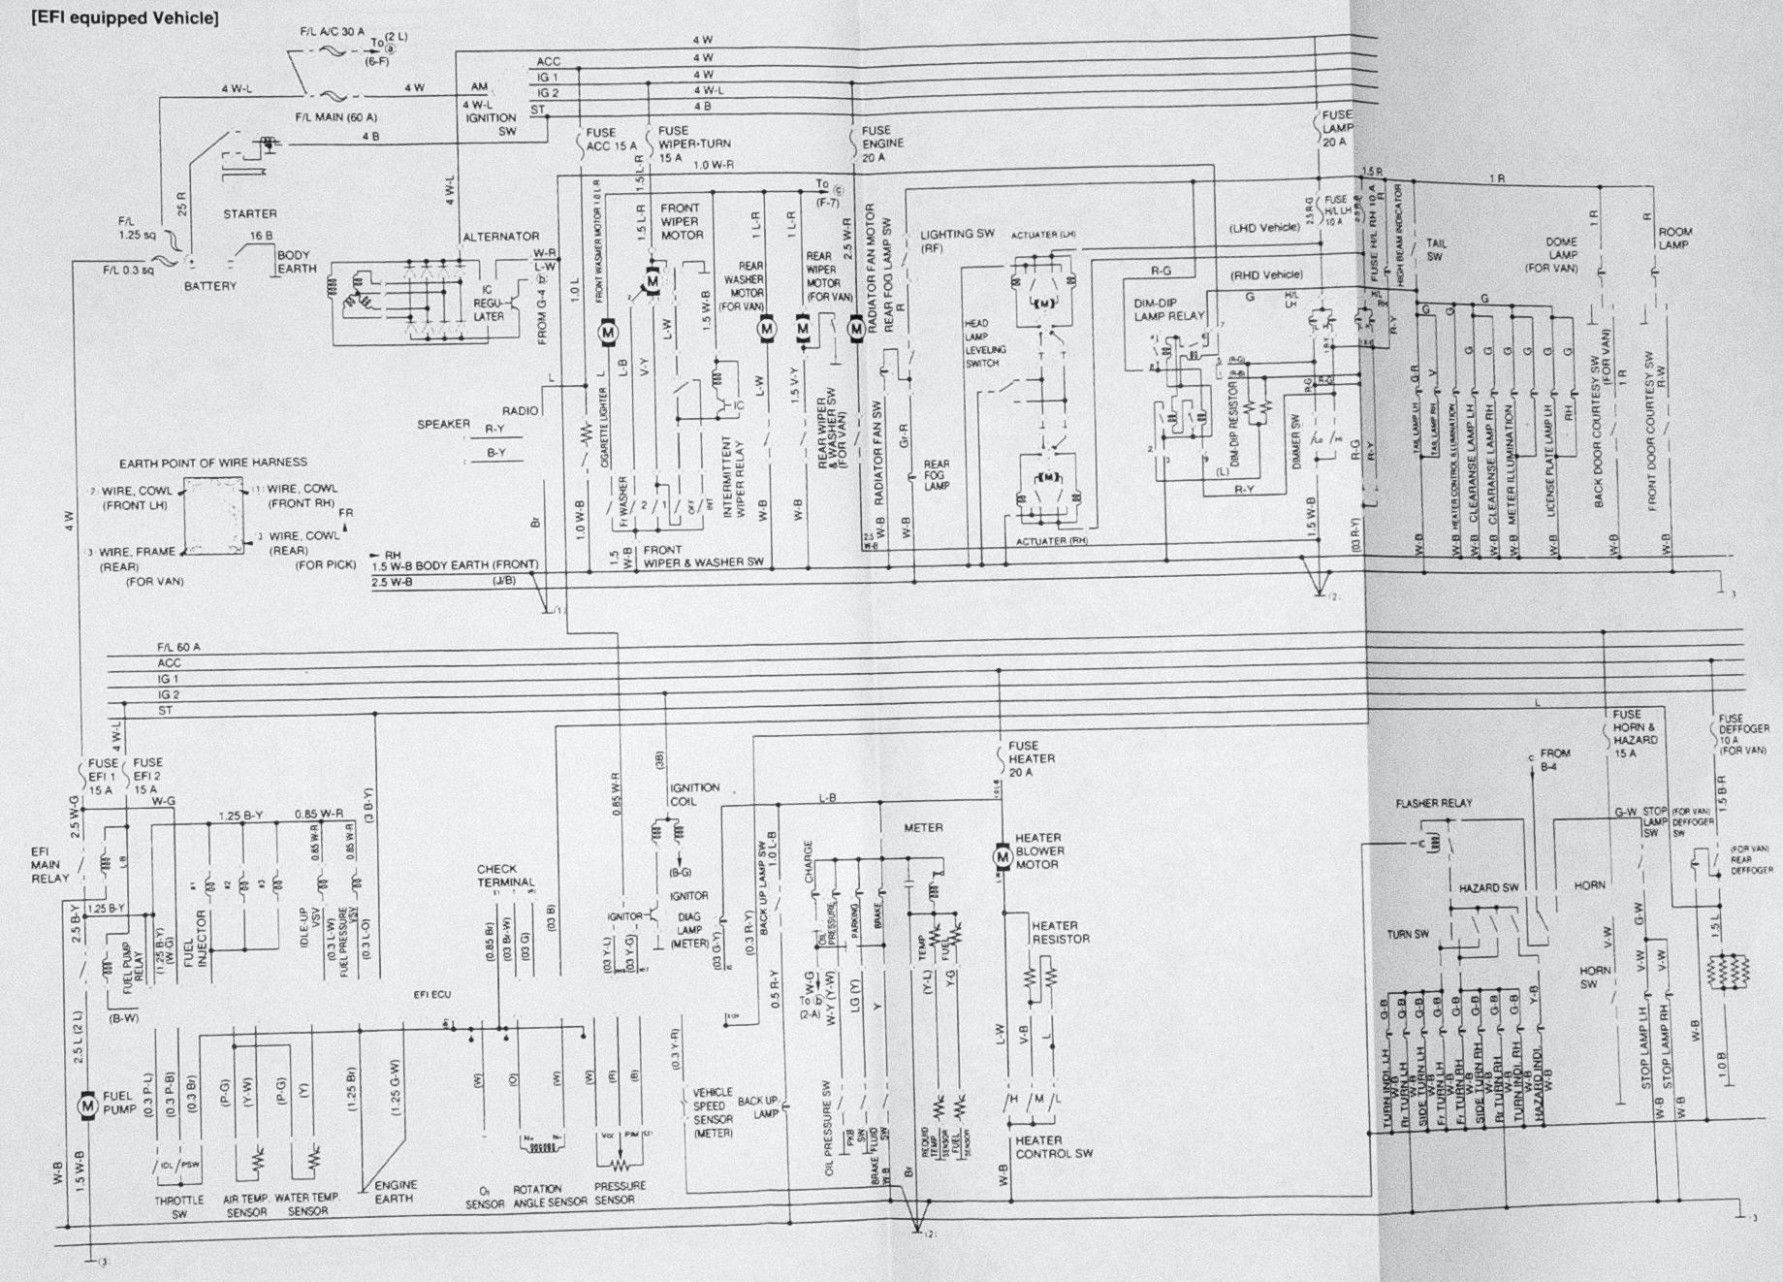 diagram] daihatsu hijet wiring diagram full version hd quality wiring  diagram - zeemandiagram.sfisp.it  sfisp.it